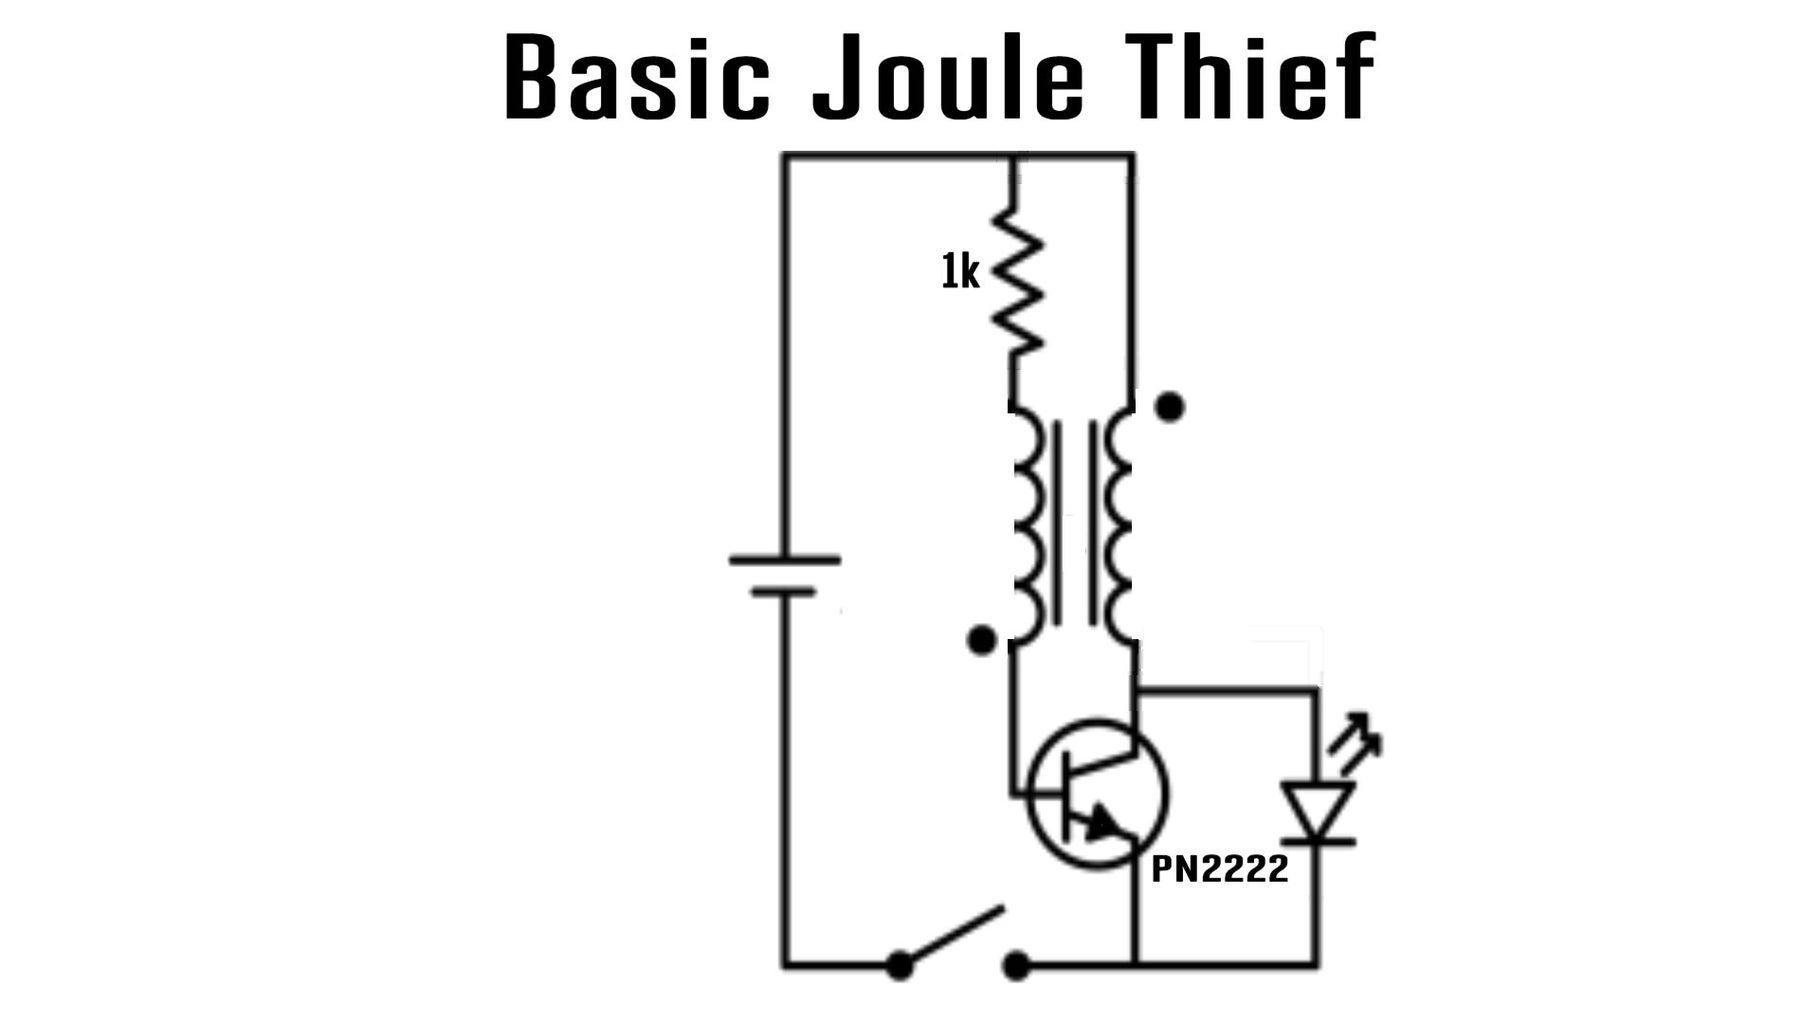 Background: How Does a Joule Thief Work?